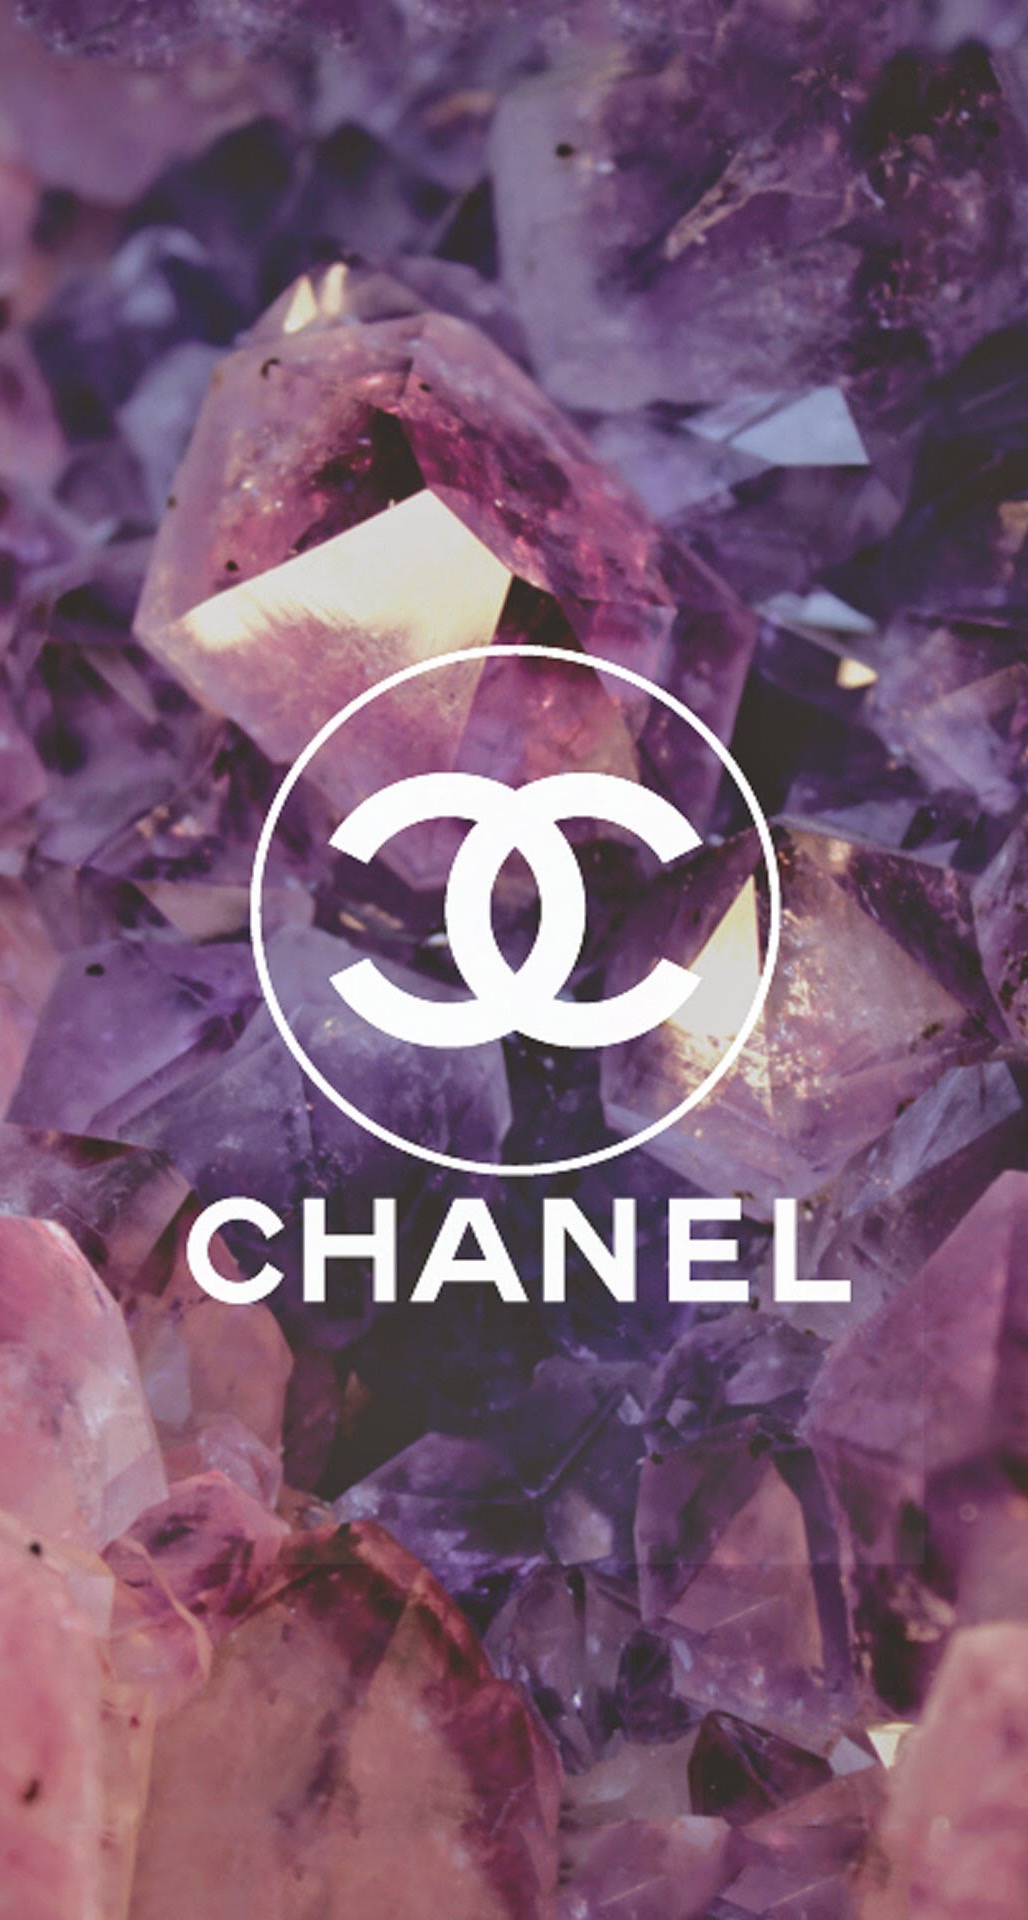 Download Chanel iphone wallpaper 1028x1920